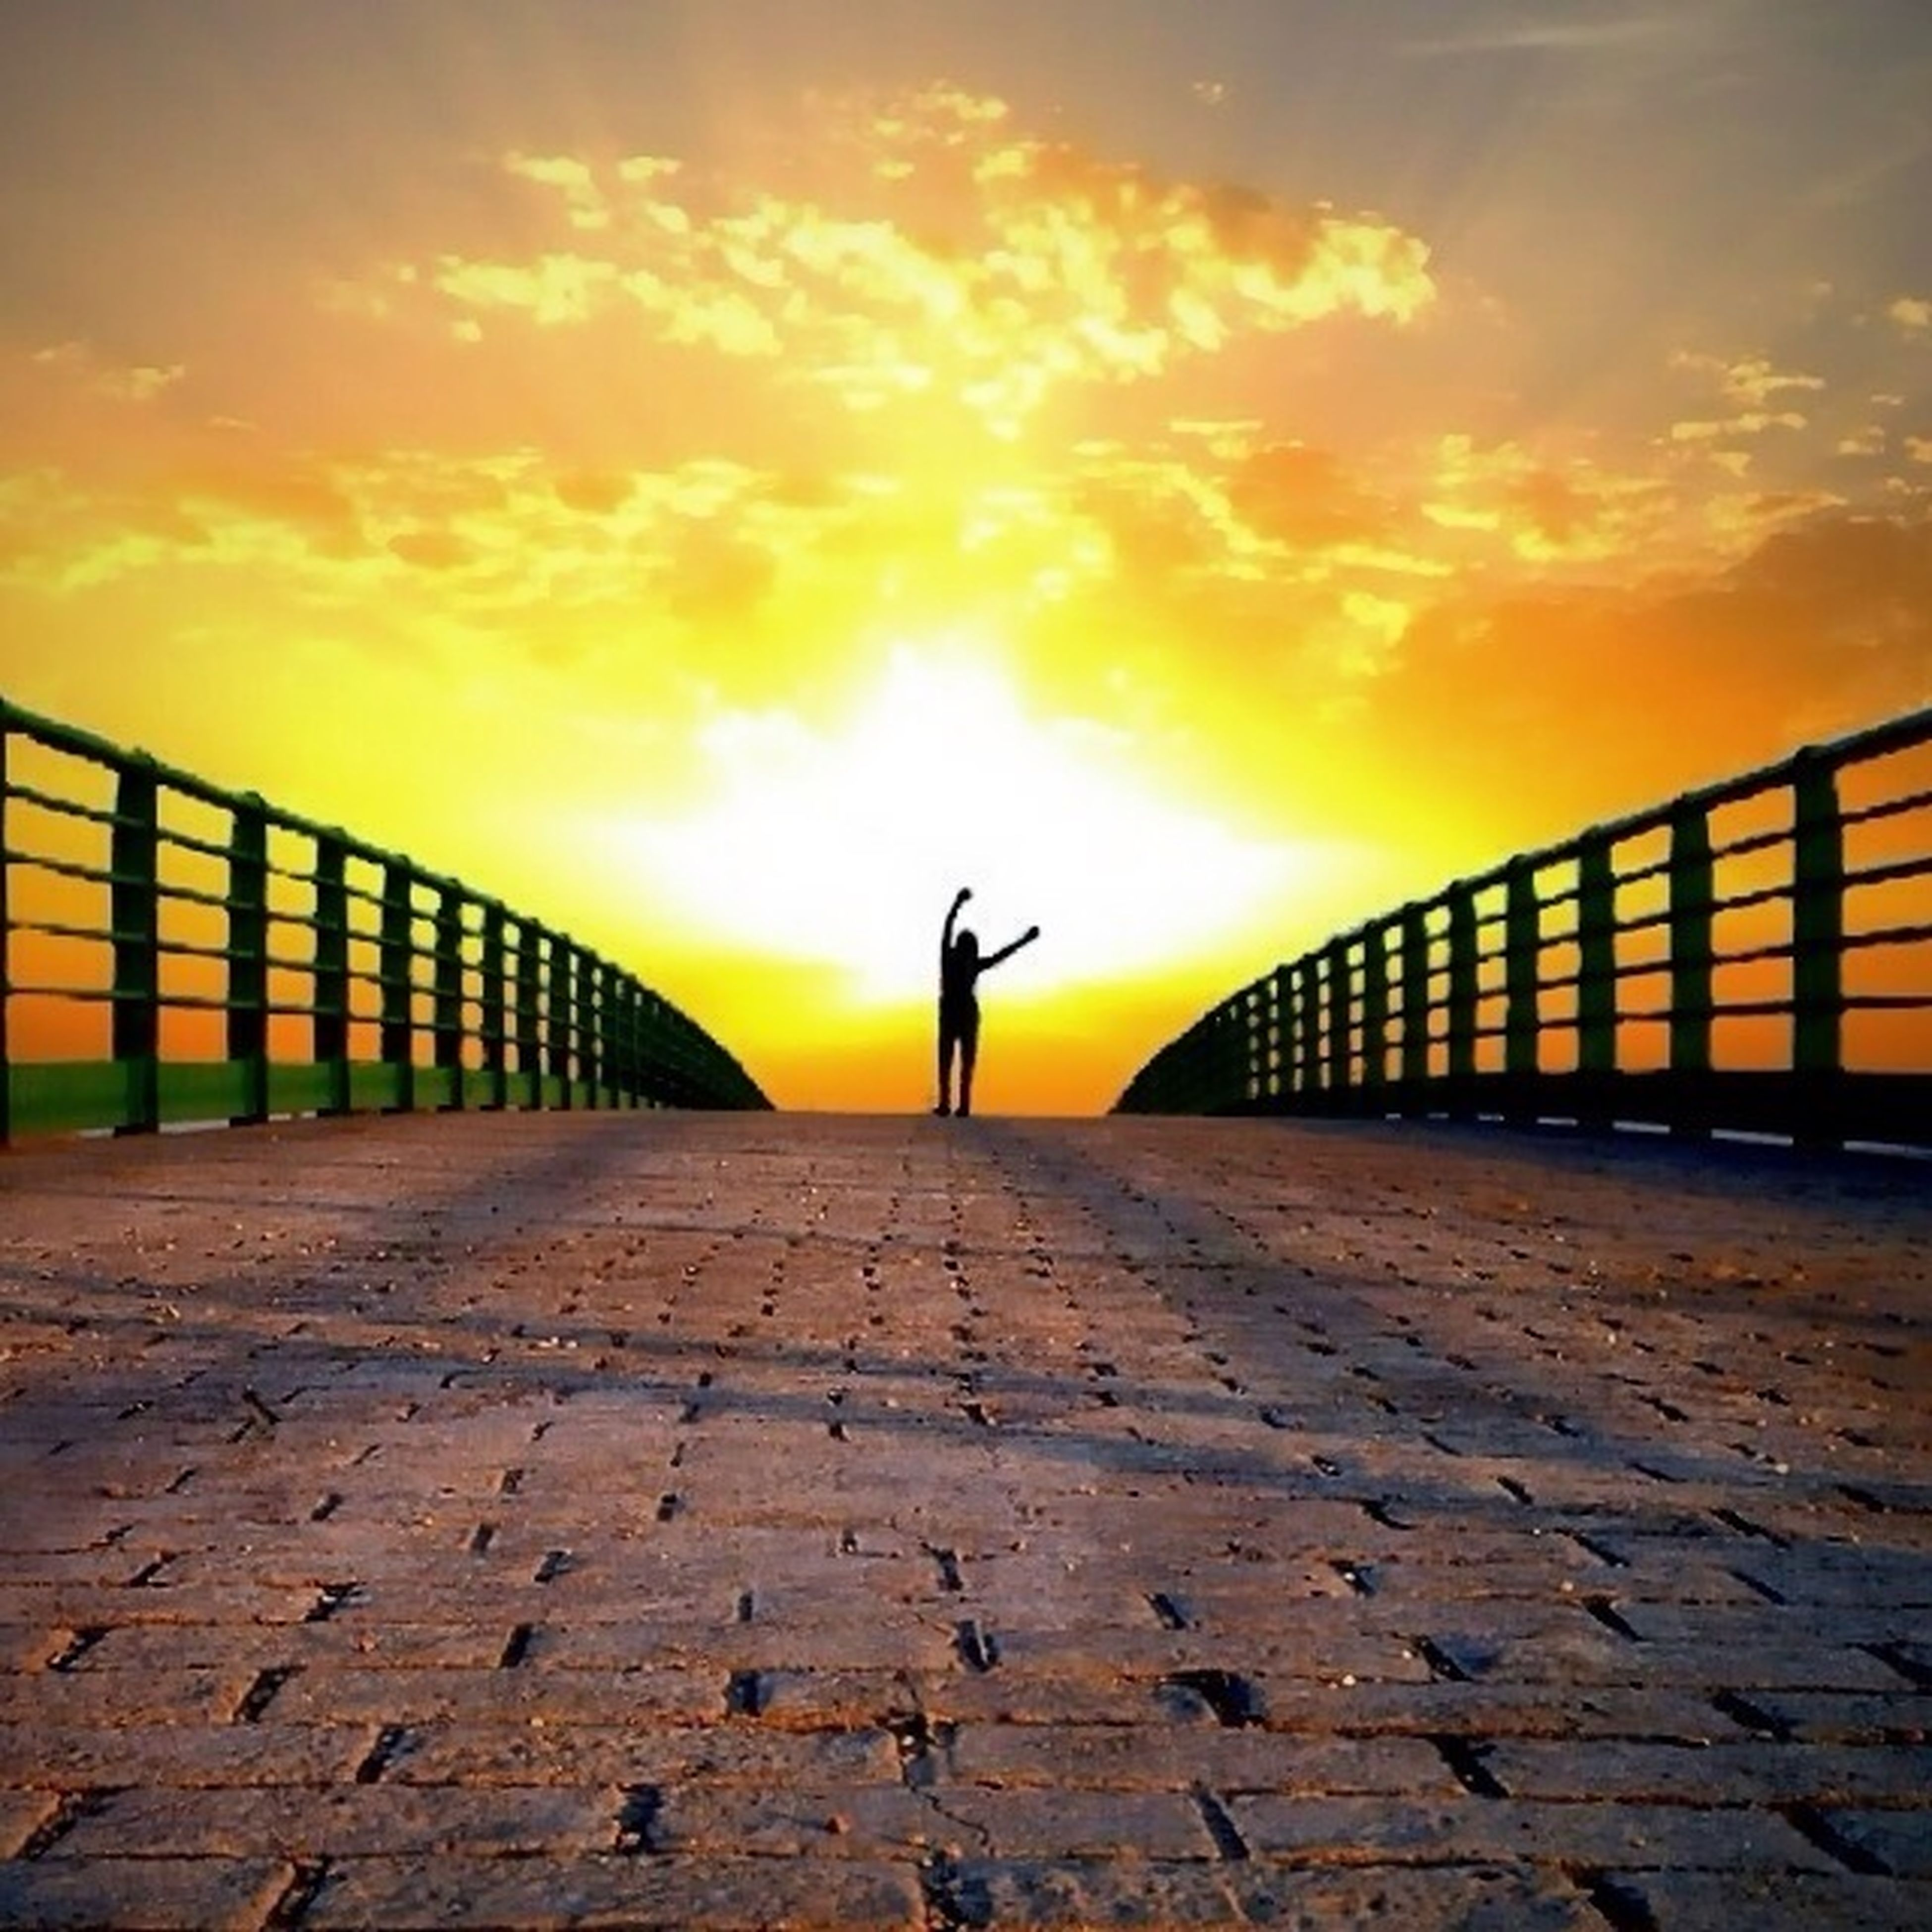 sunset, the way forward, sky, orange color, railing, cloud - sky, diminishing perspective, silhouette, full length, vanishing point, built structure, walking, transportation, sunlight, cloud, outdoors, lifestyles, nature